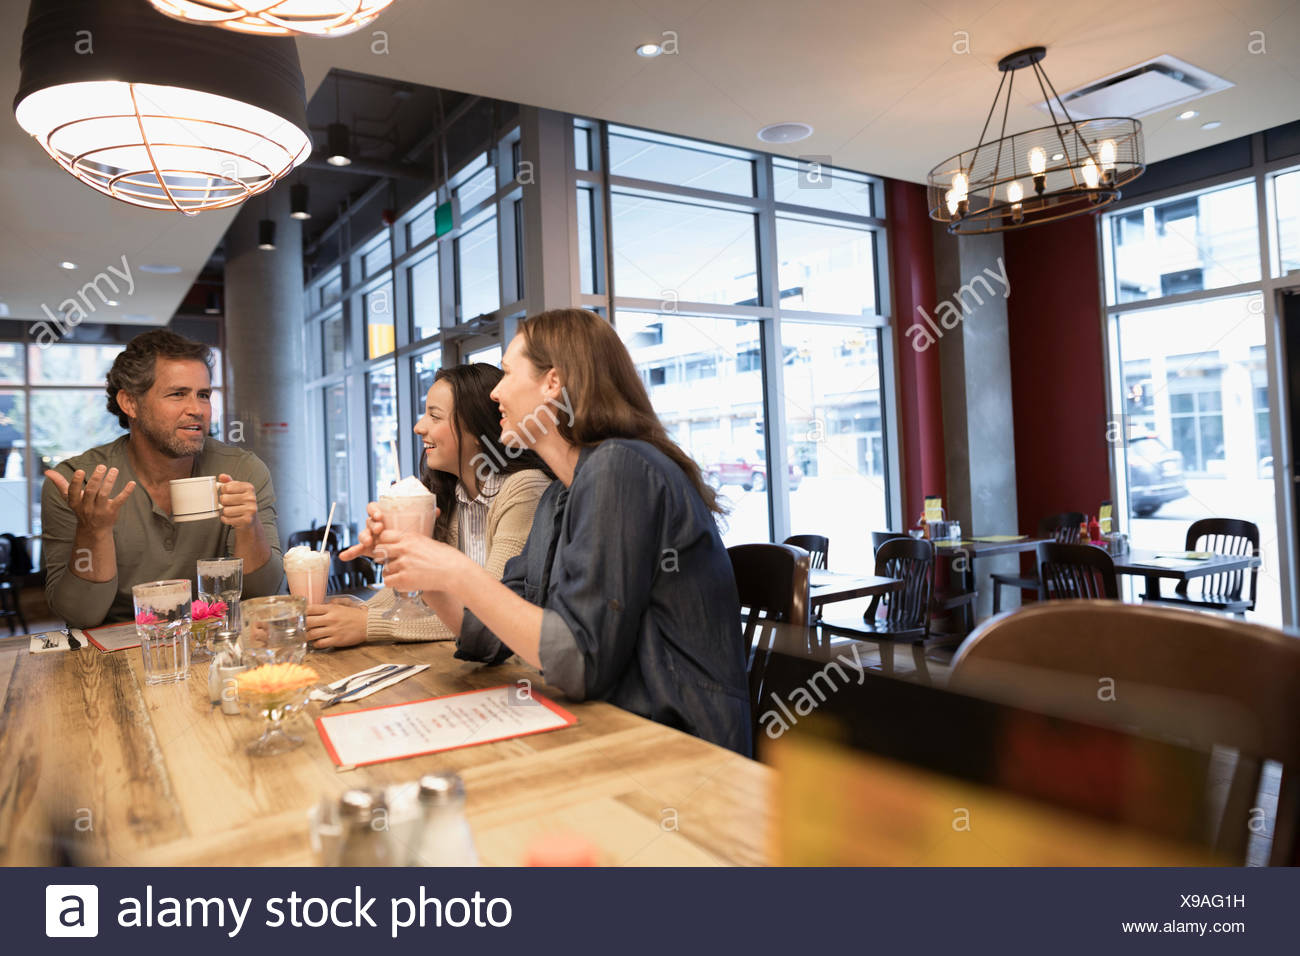 Parents and teenage daughter drinking coffee and milkshakes at diner counter - Stock Image